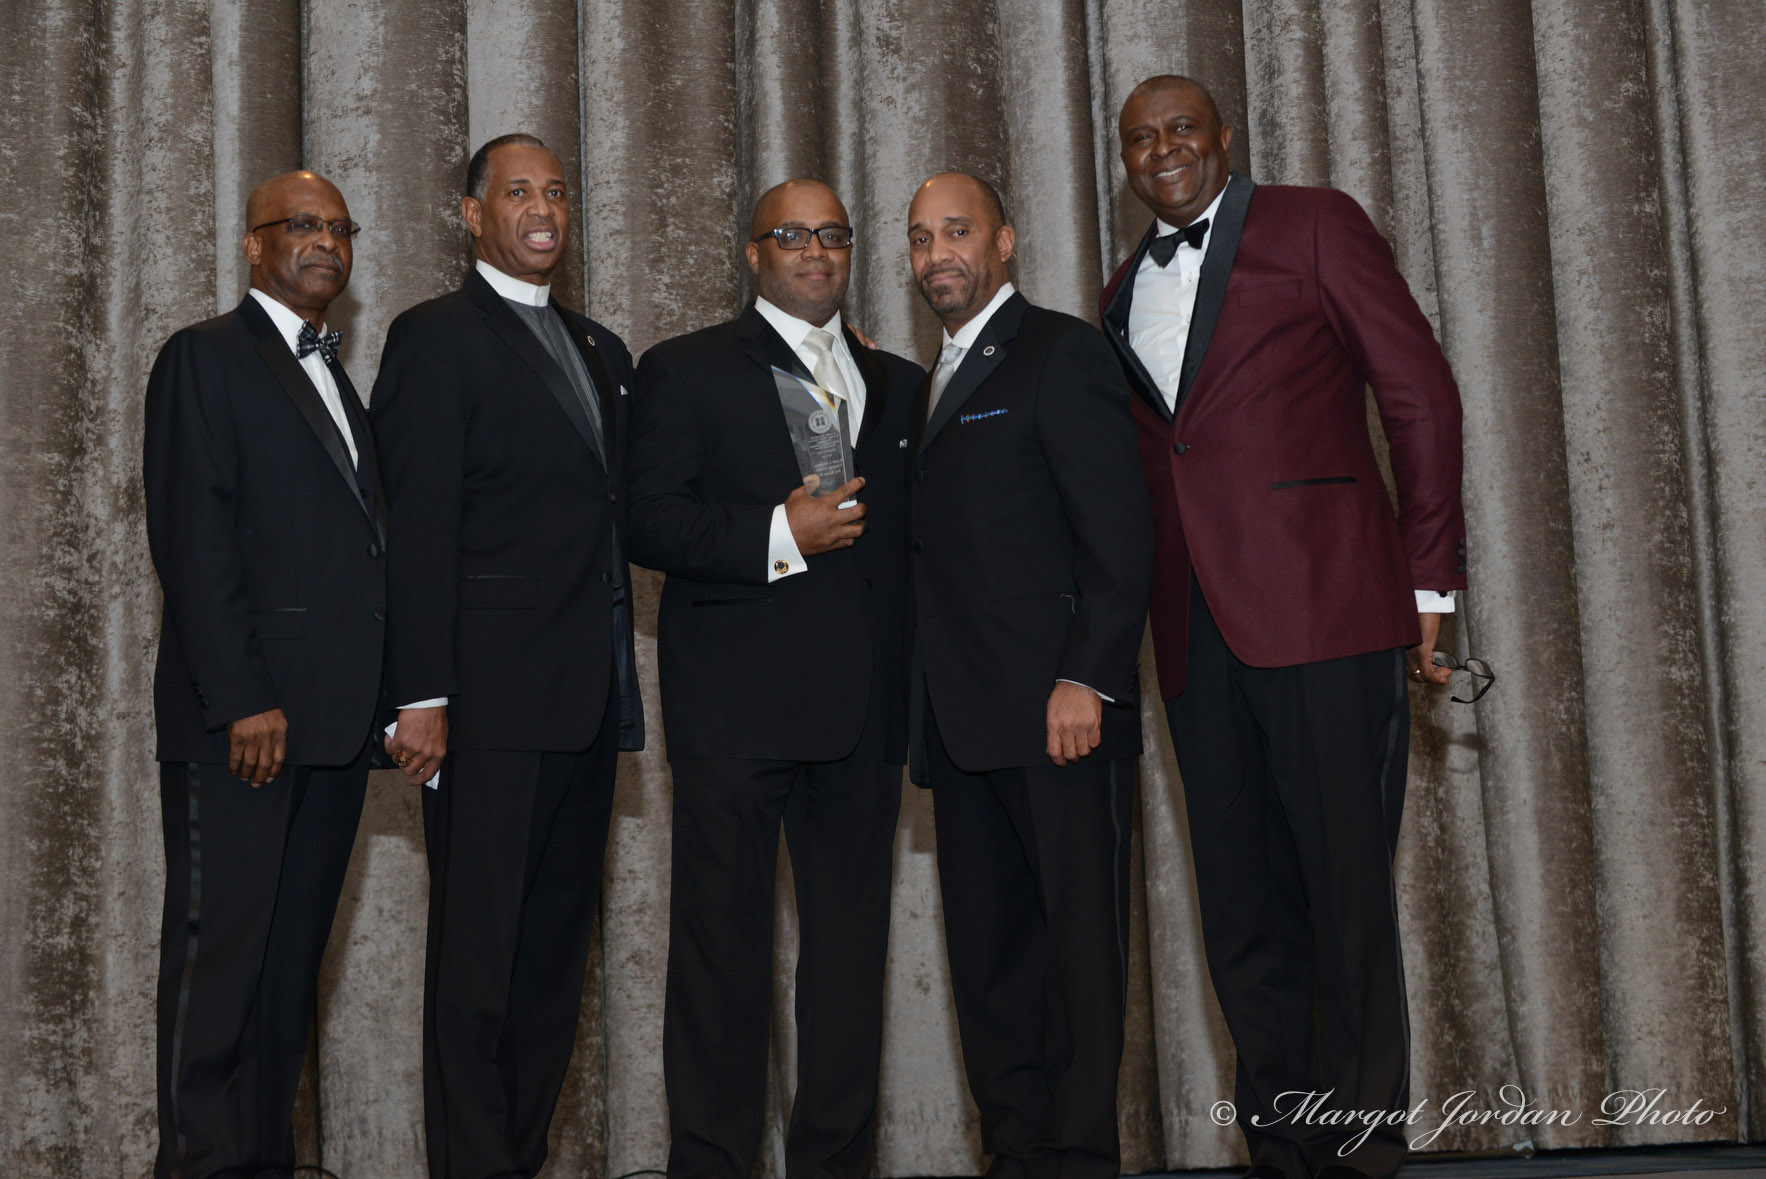 ohbm bringing you a new york kind of smile the harlem times will brown jr co chair gala committee reverend jacques andre de